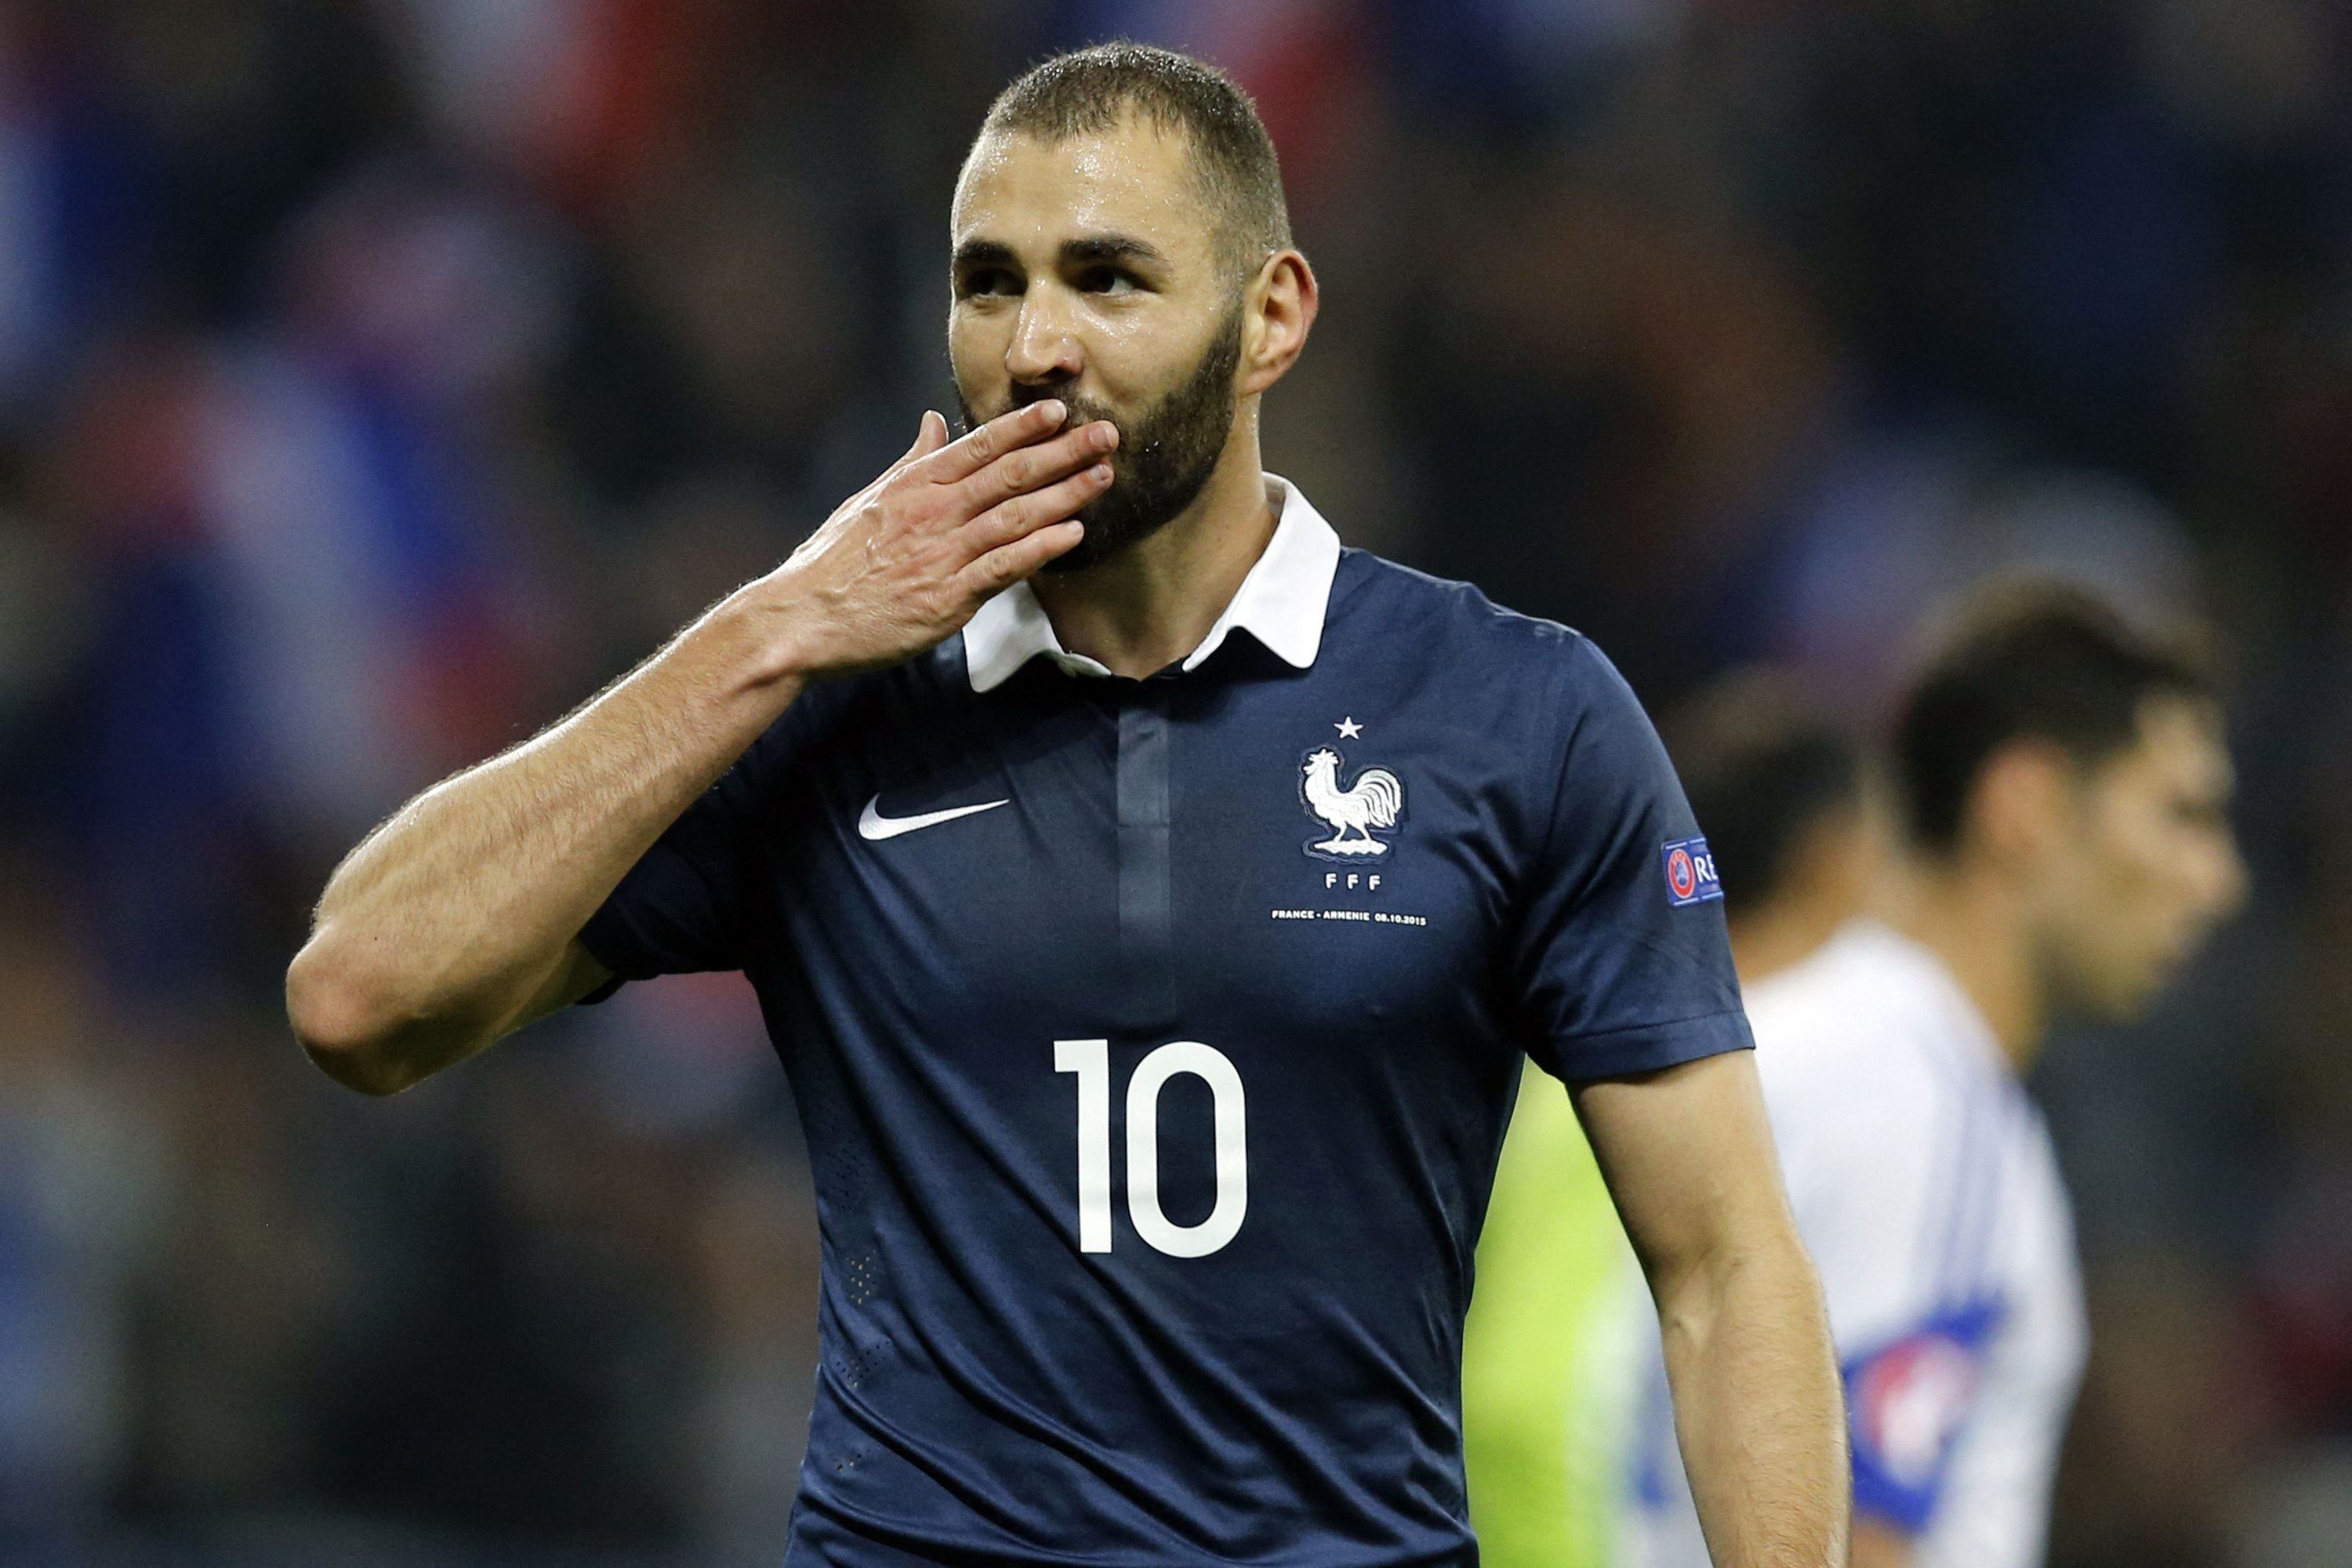 Benzema gets shock France recall for Euro after 6-year absence | Daily Sabah